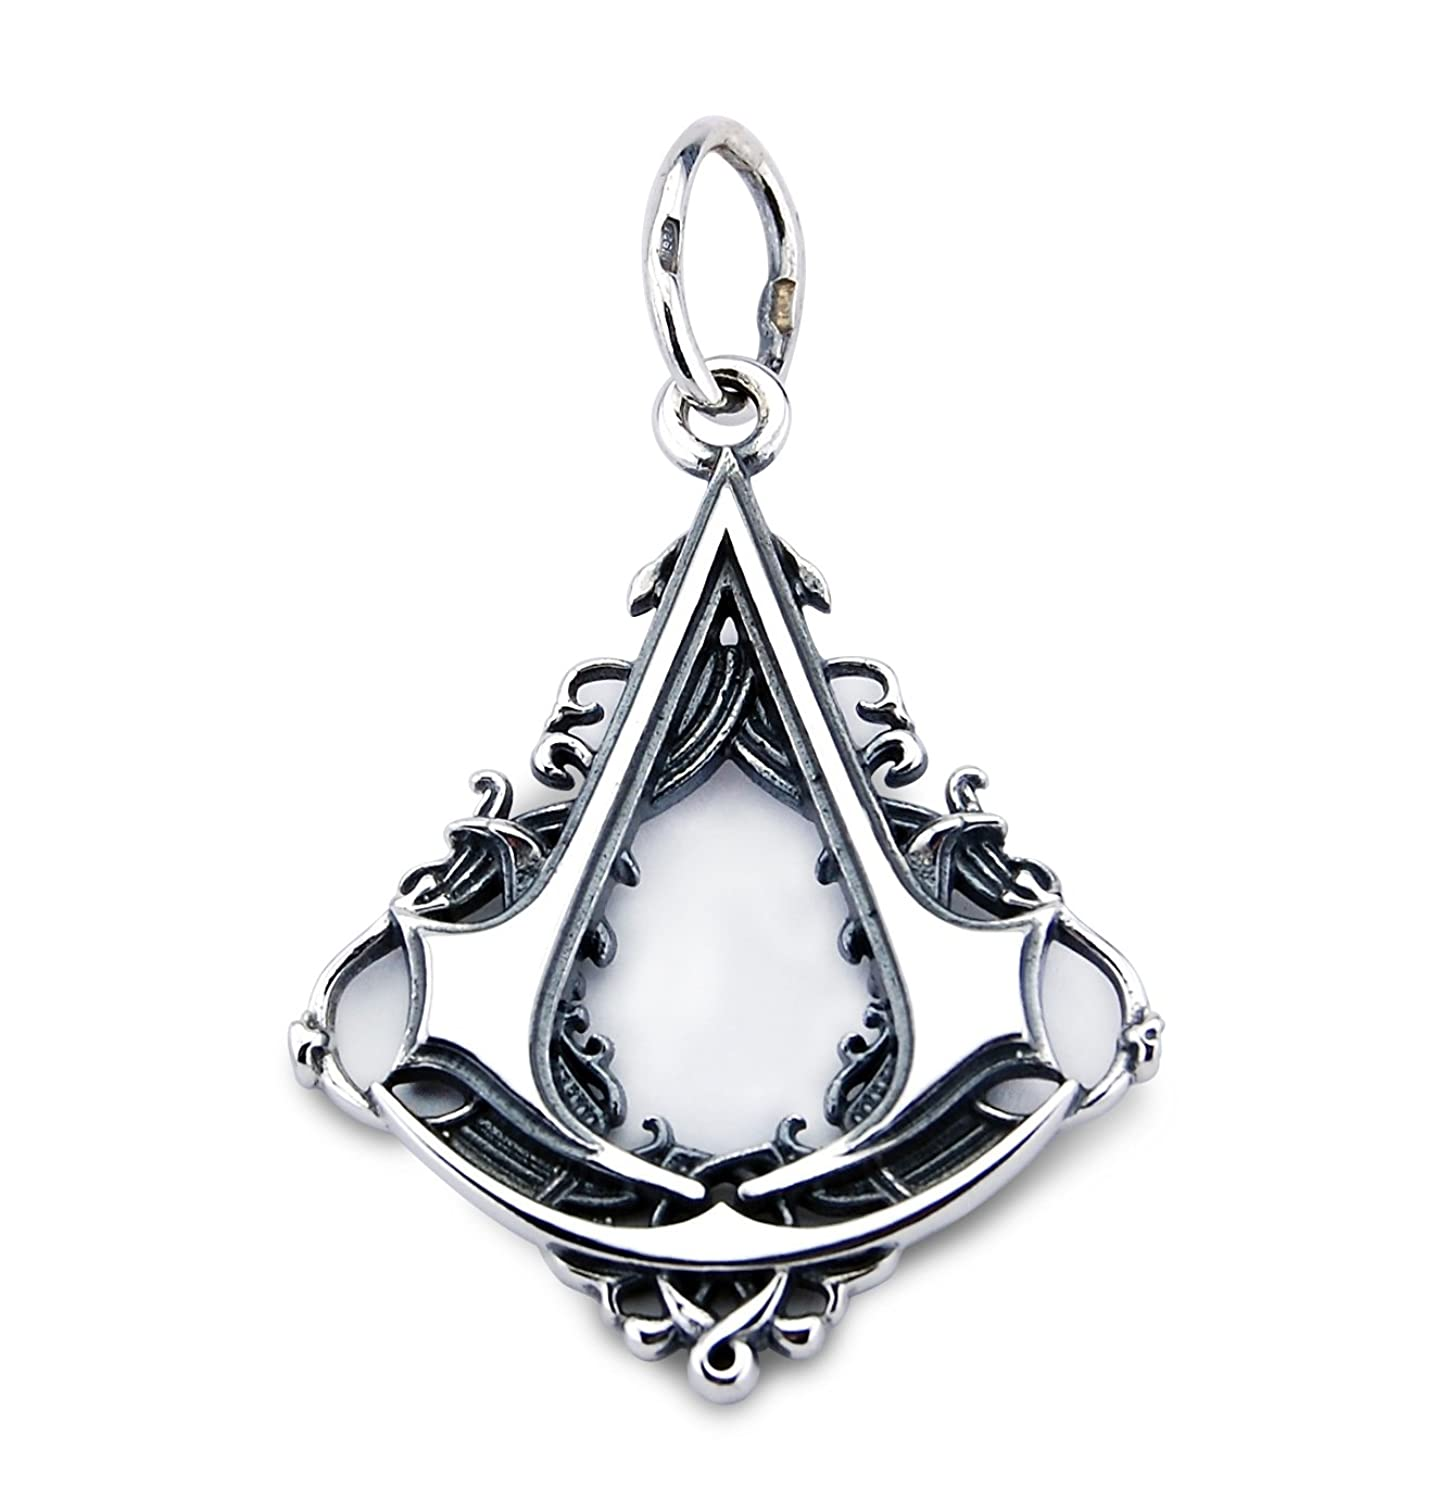 Deluxe Adult Costumes - Assassin's Creed IV Sterling Silver Black Flag Pendant